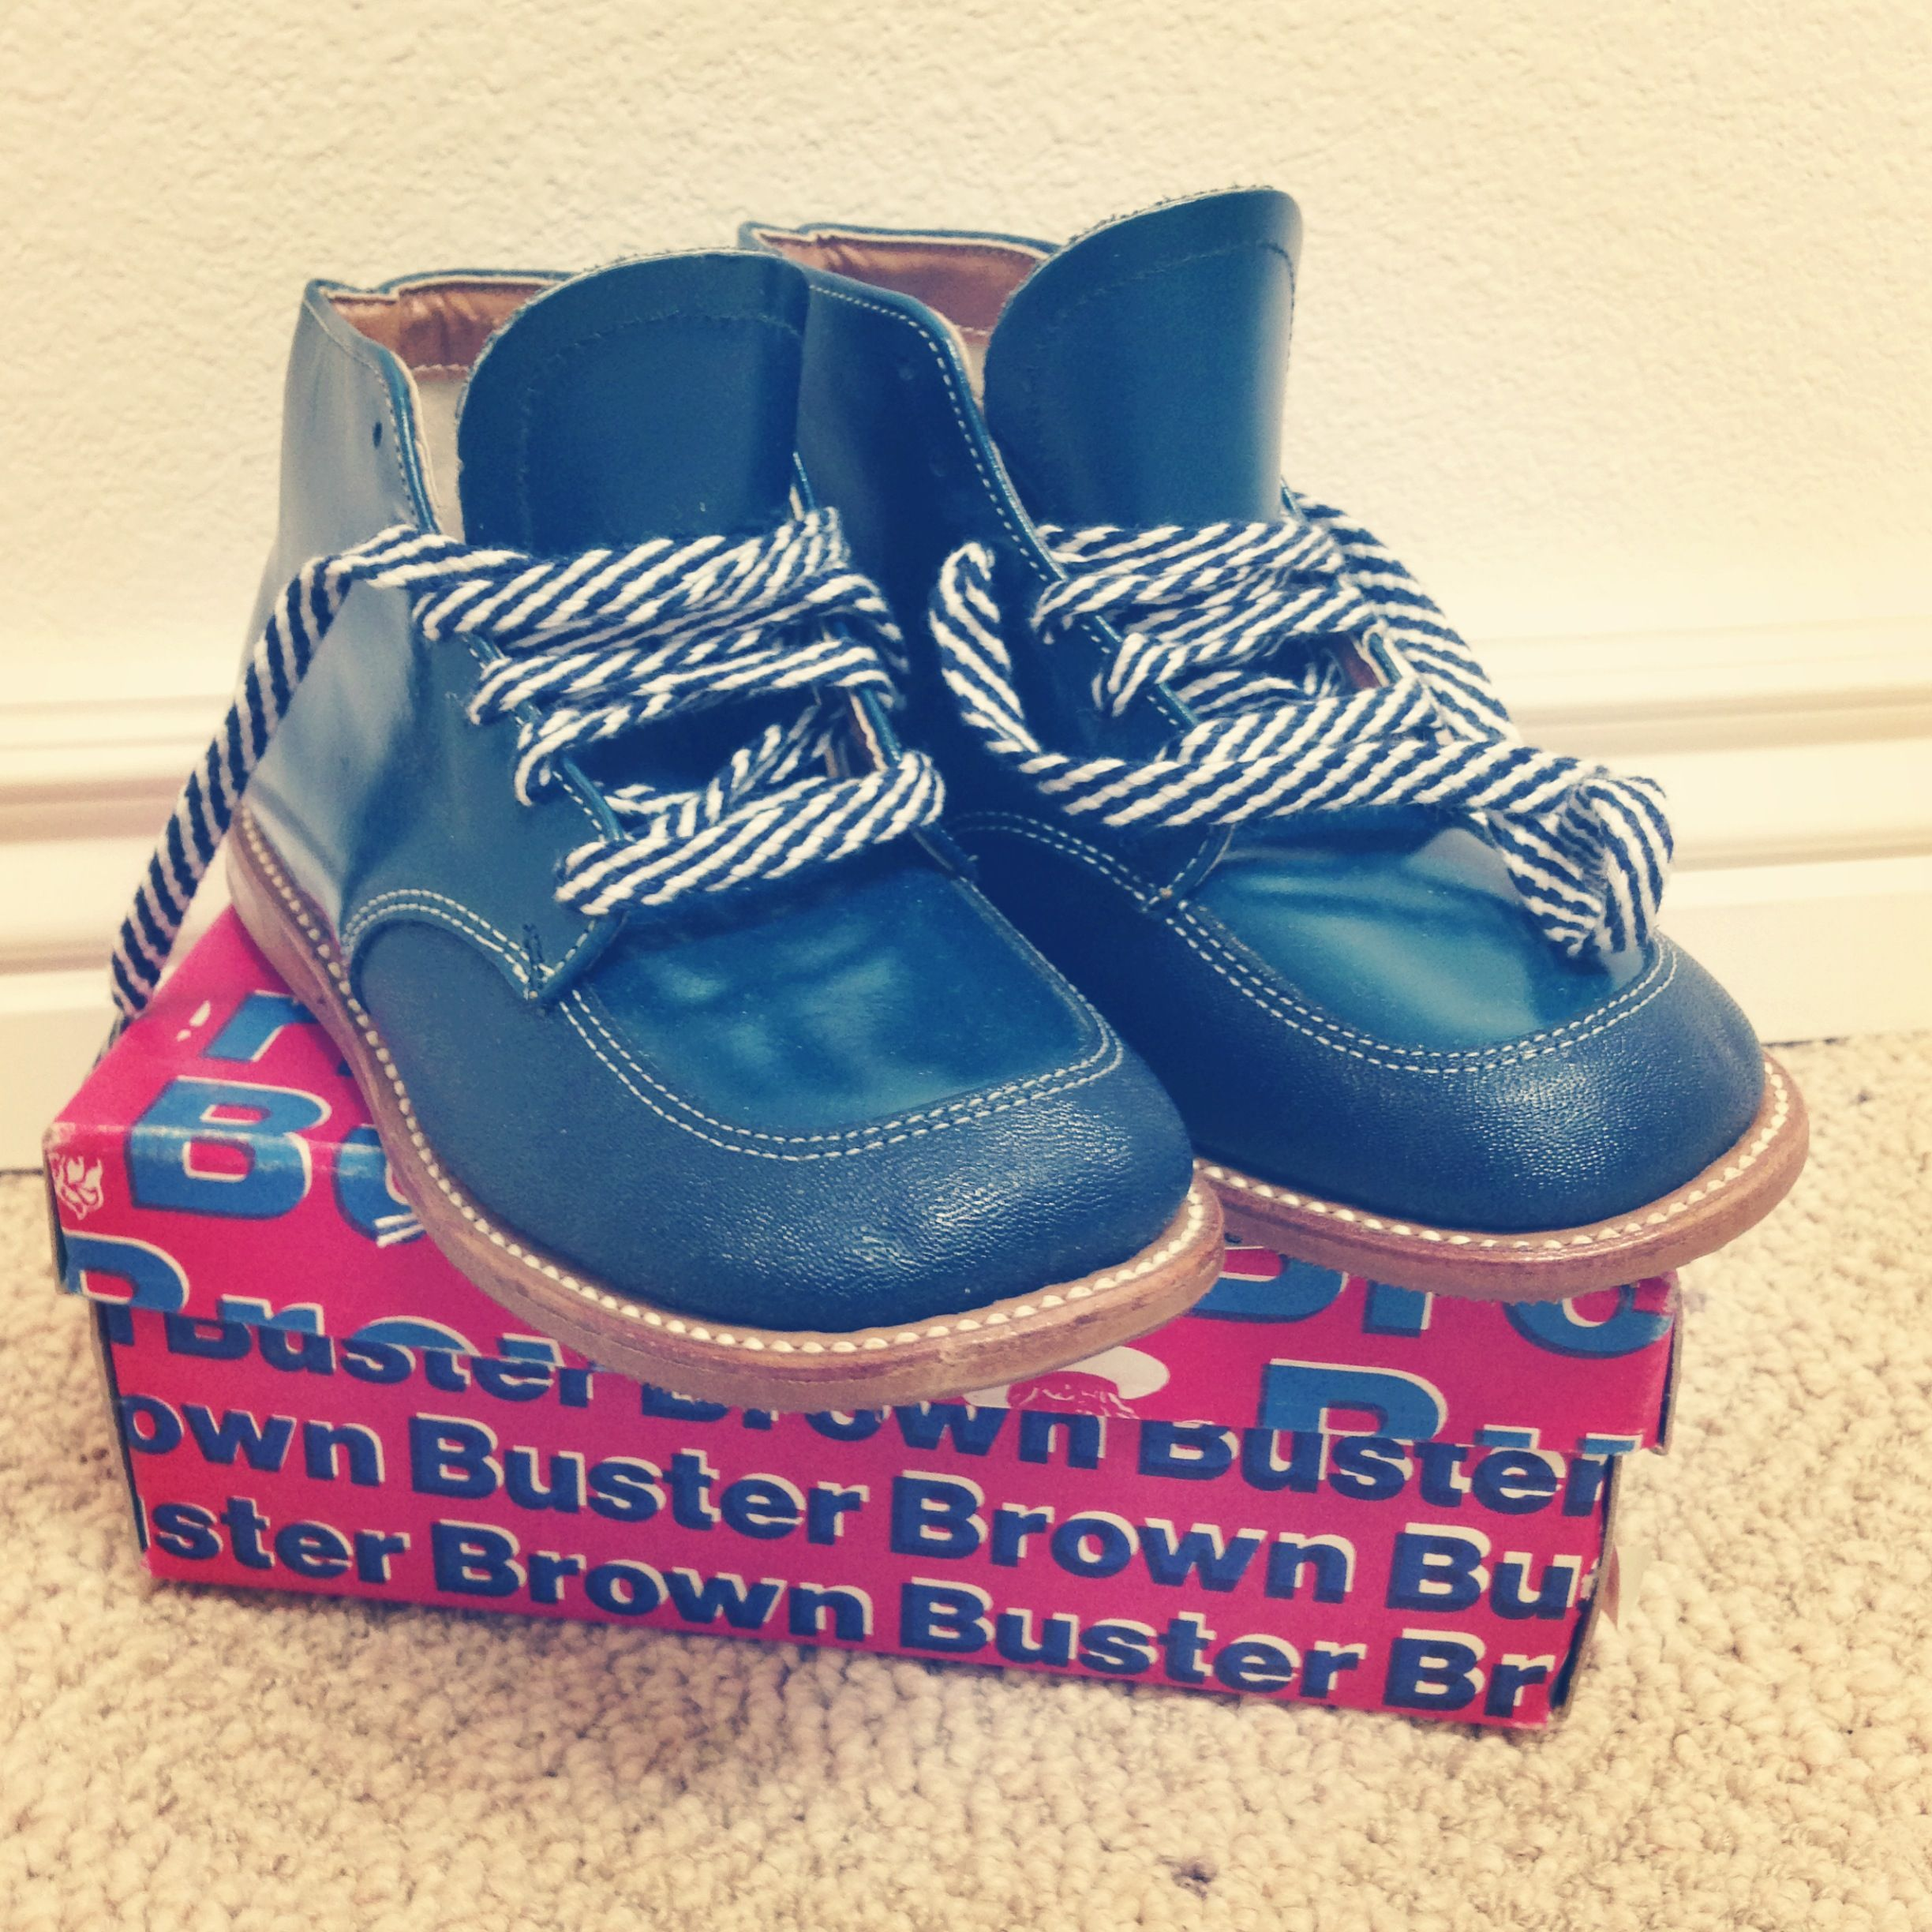 35ed602beb19 Vintage Buster Brown Baby Shoes